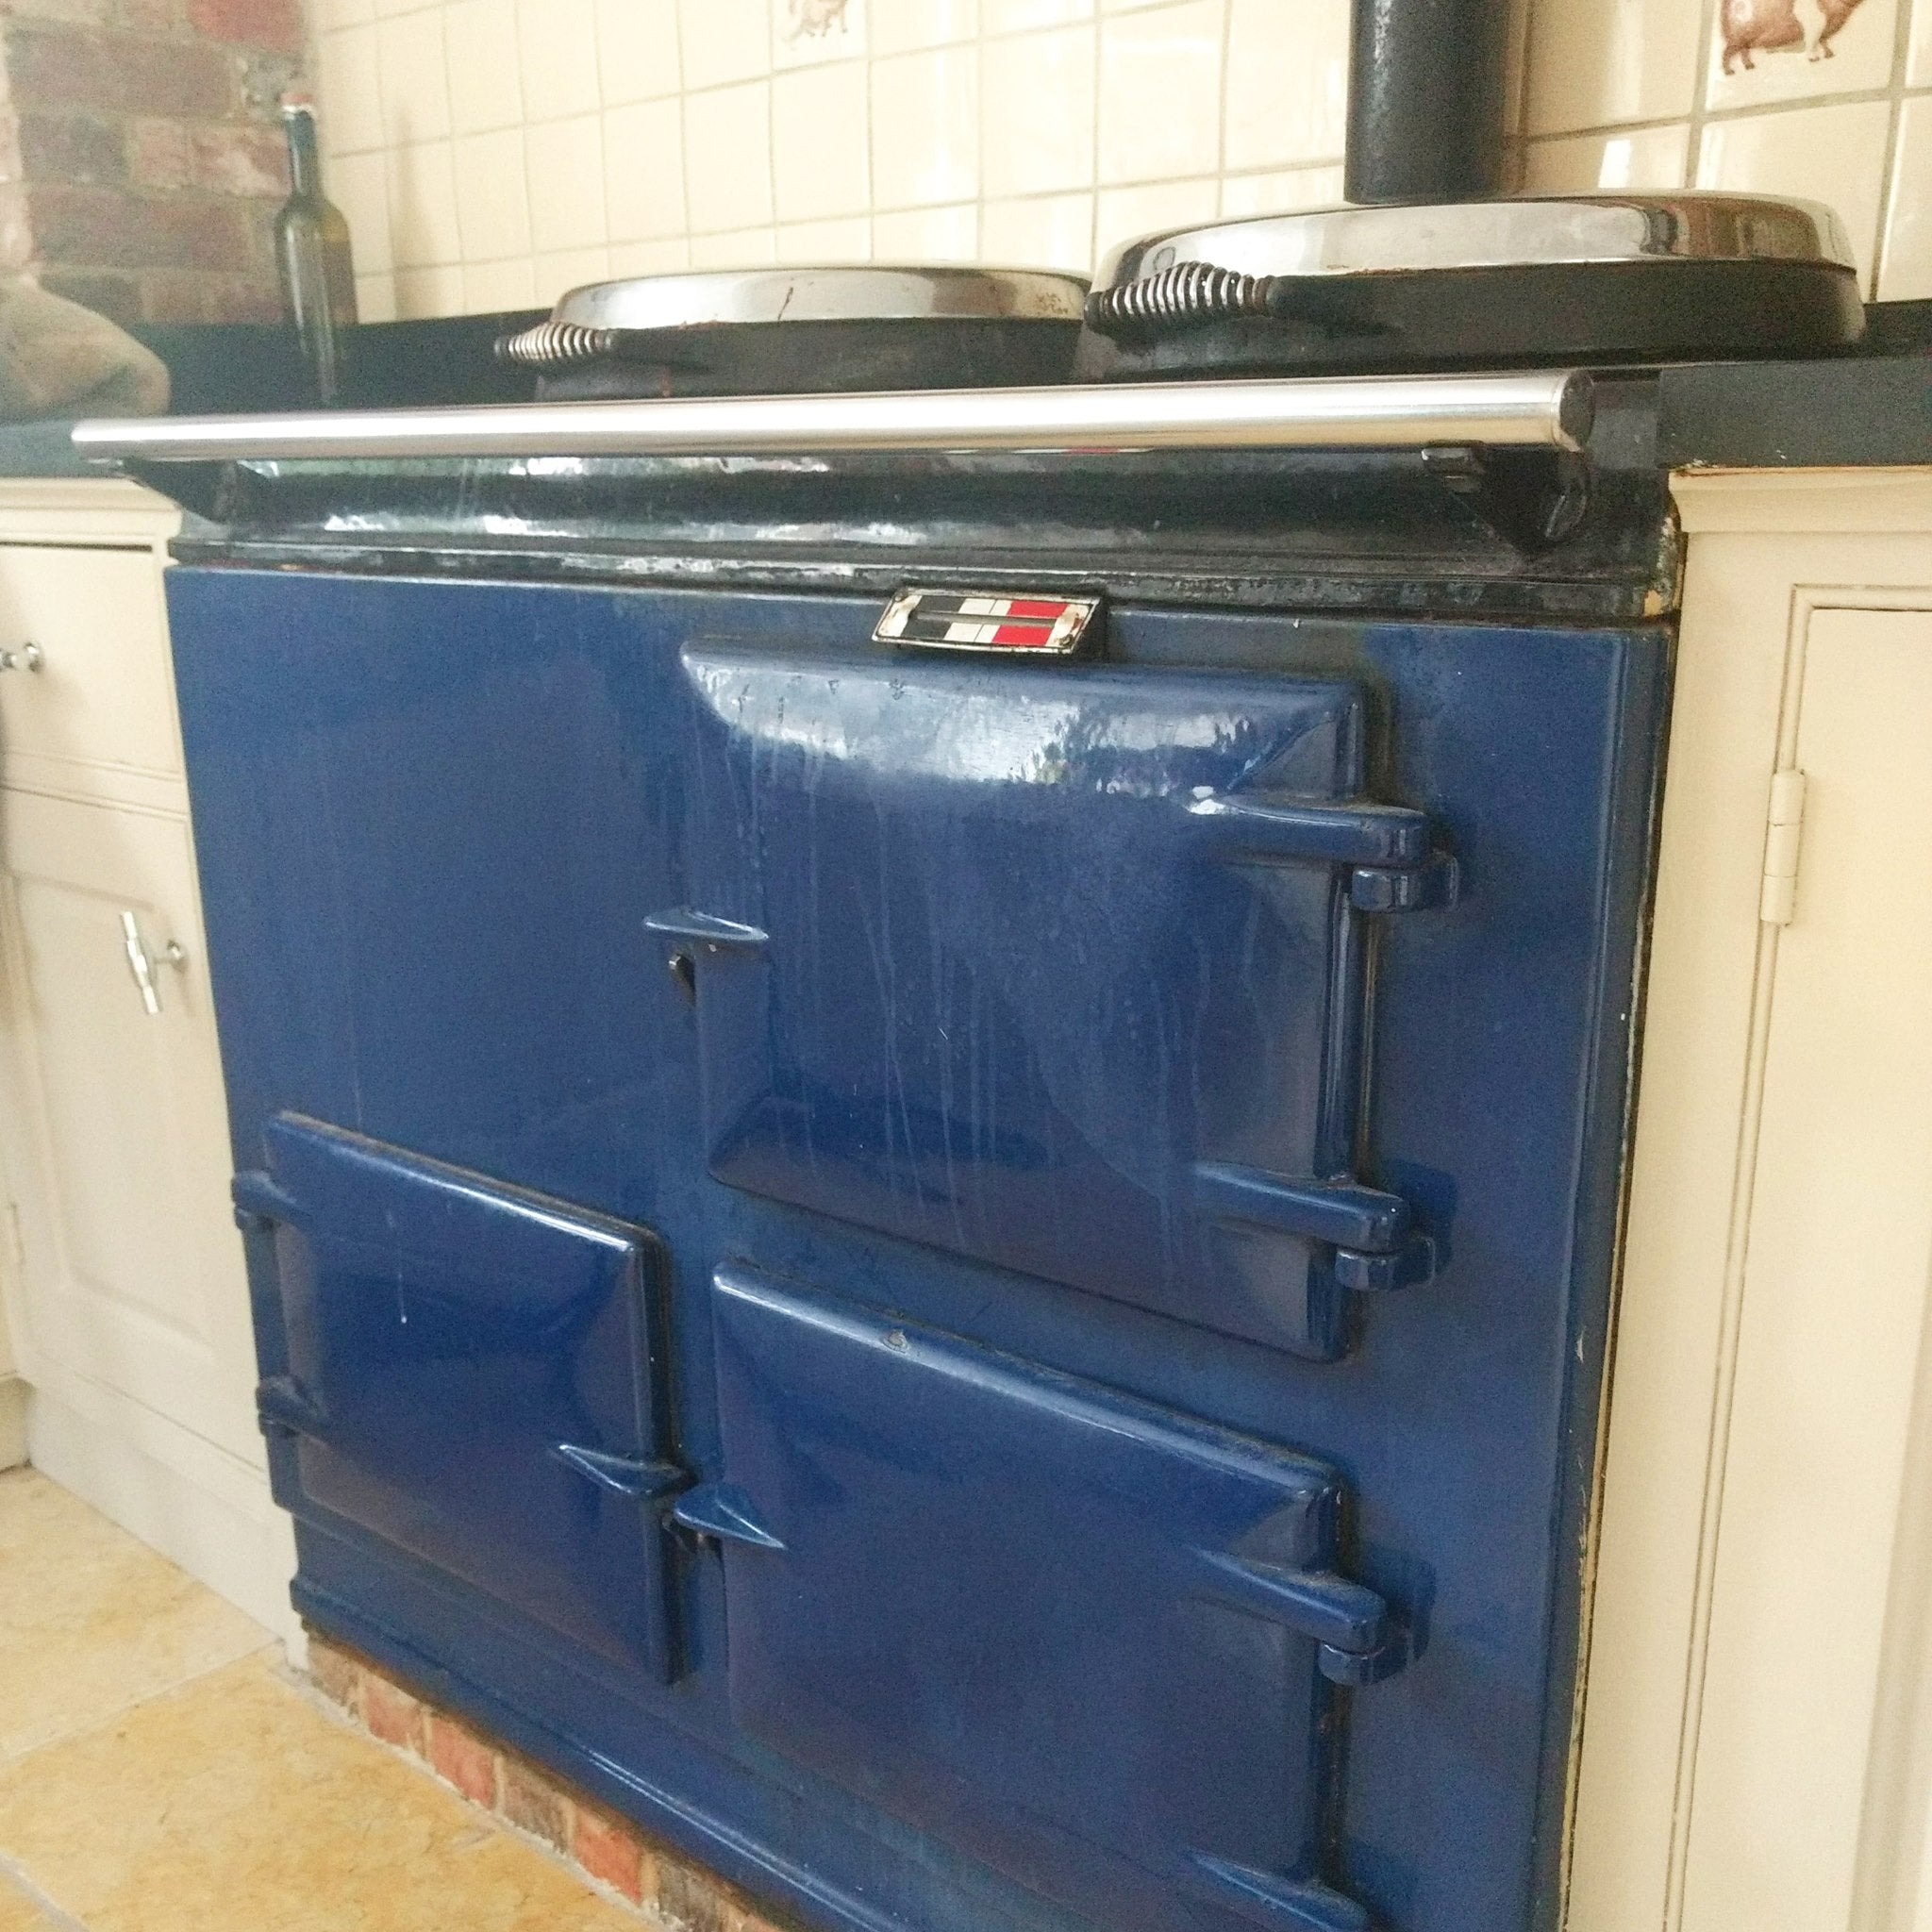 Blue Aga range cooker with streaked front